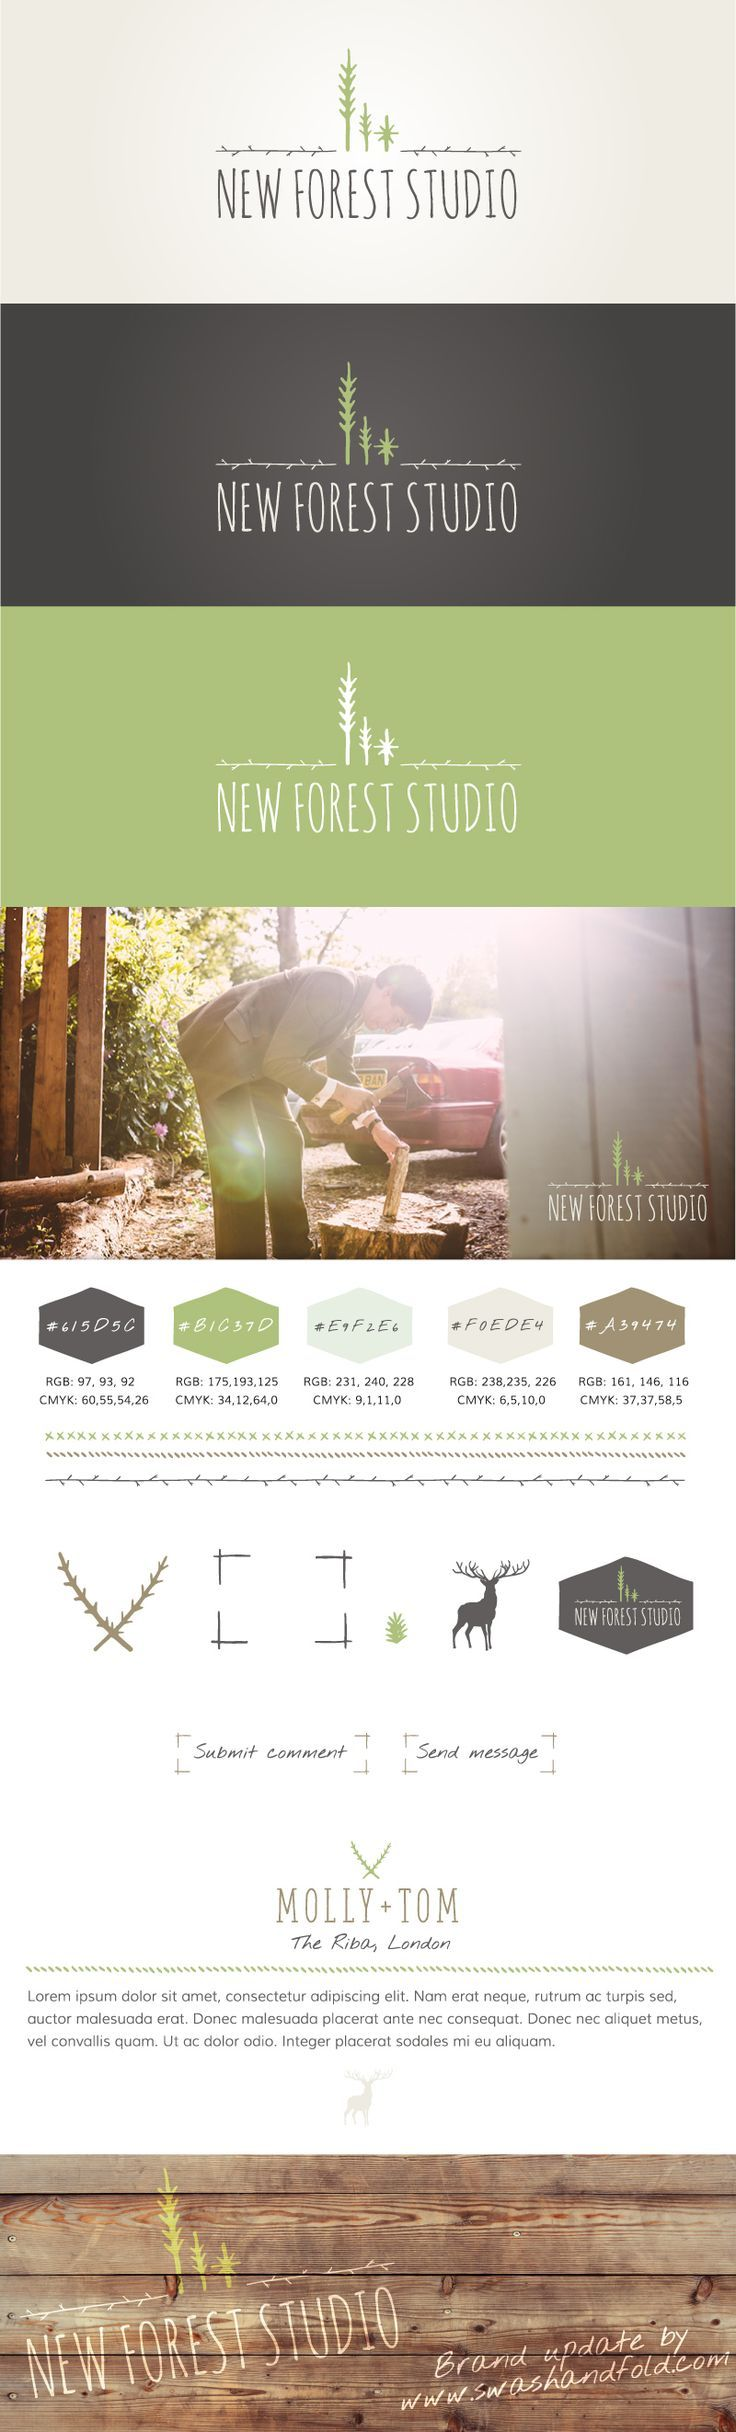 New Forest Studio logo and branding for Wedding Photography business, with hand-lettered typefaces and lots of woodsy, organic elements